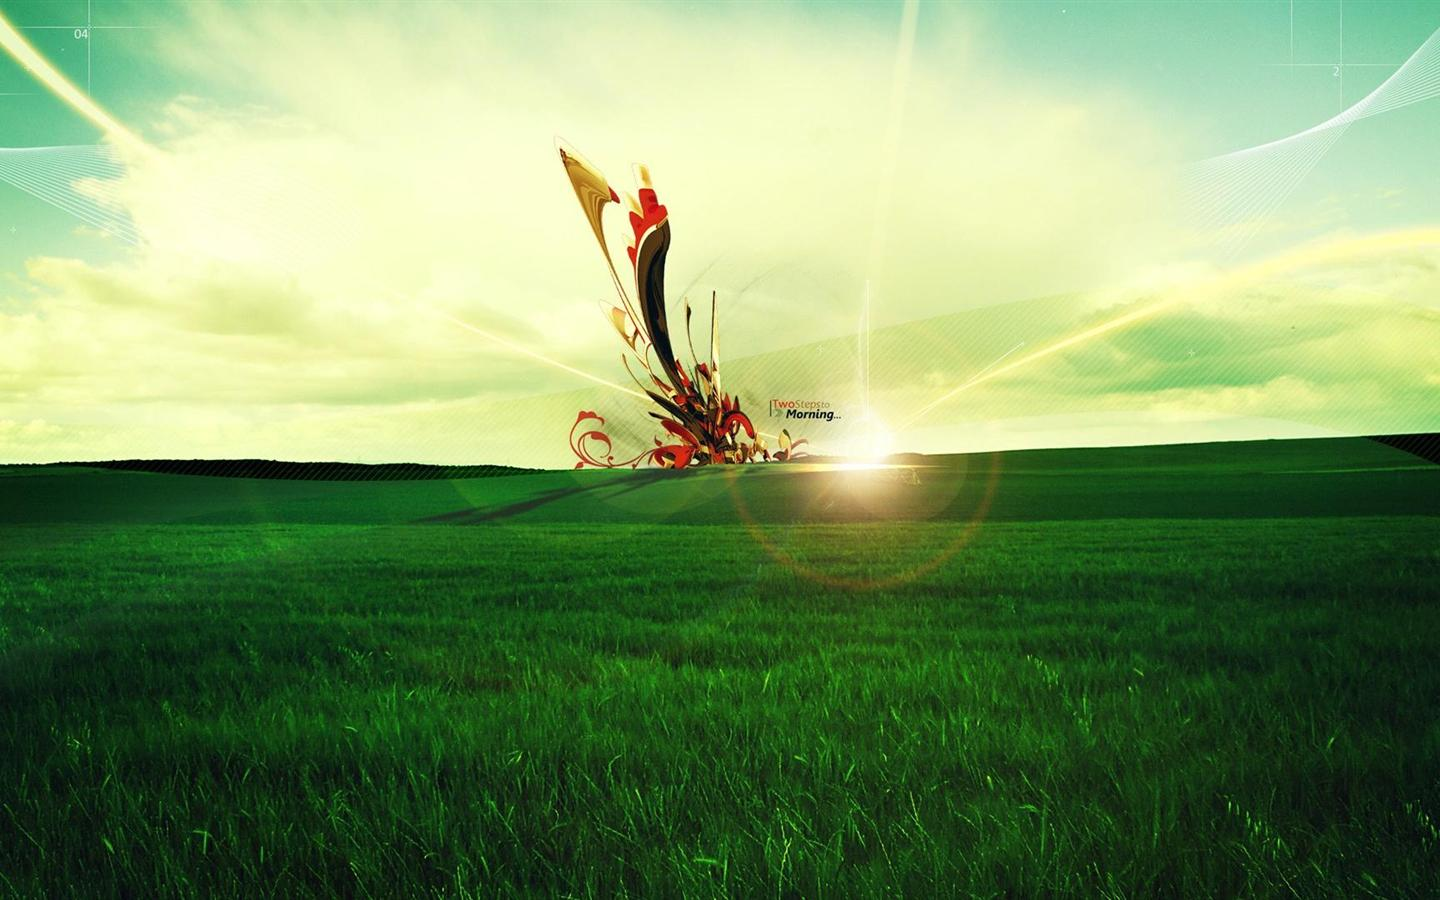 1440x900 Hd Green Field With Bright Light Desktop Backgrounds 1440x900